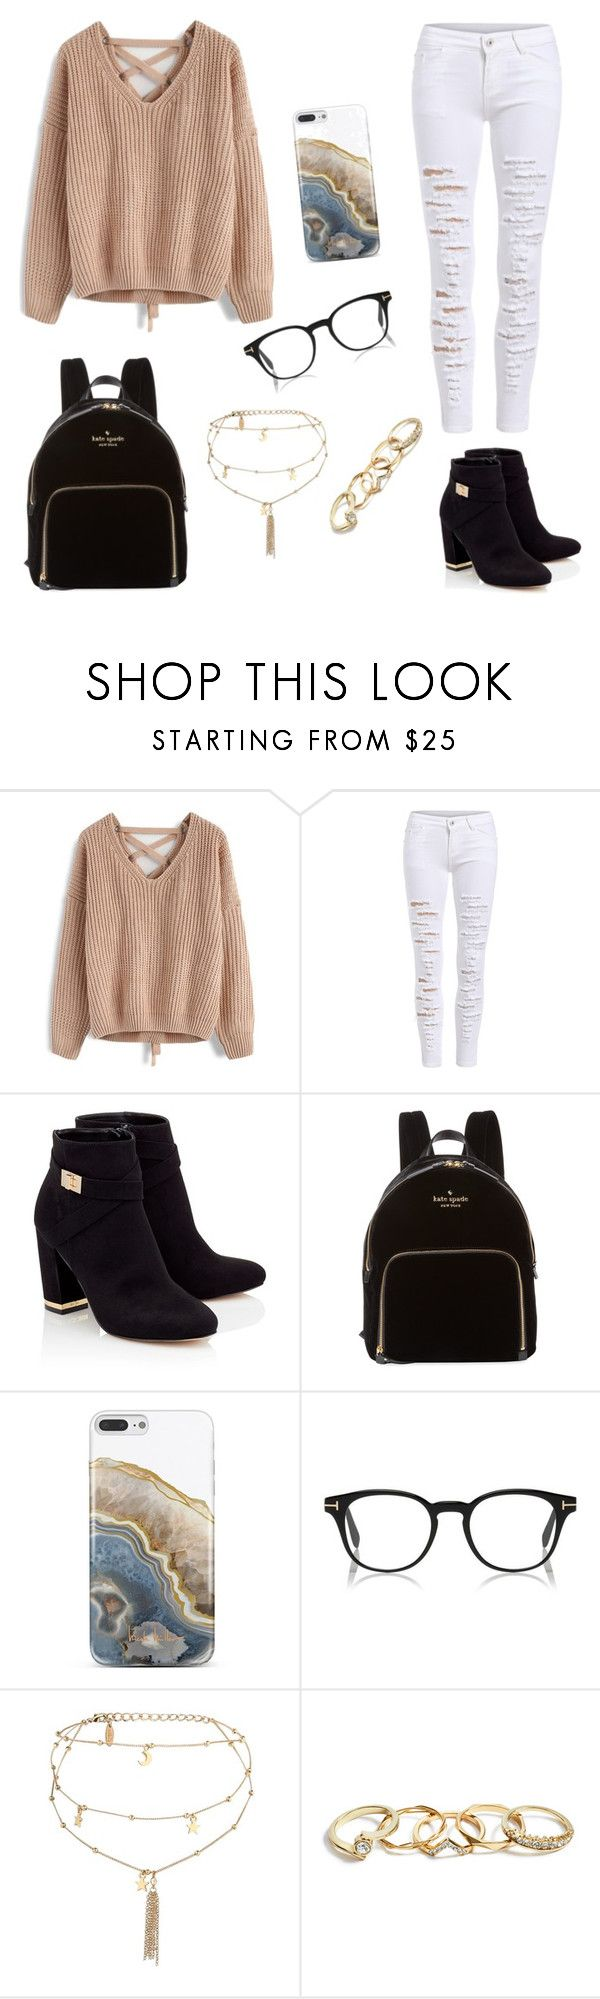 """""""Untitled #66"""" by ashlynnebagnal on Polyvore featuring Chicwish, Lipsy, Kate Spade, Nanette Lepore, Ettika and GUESS"""